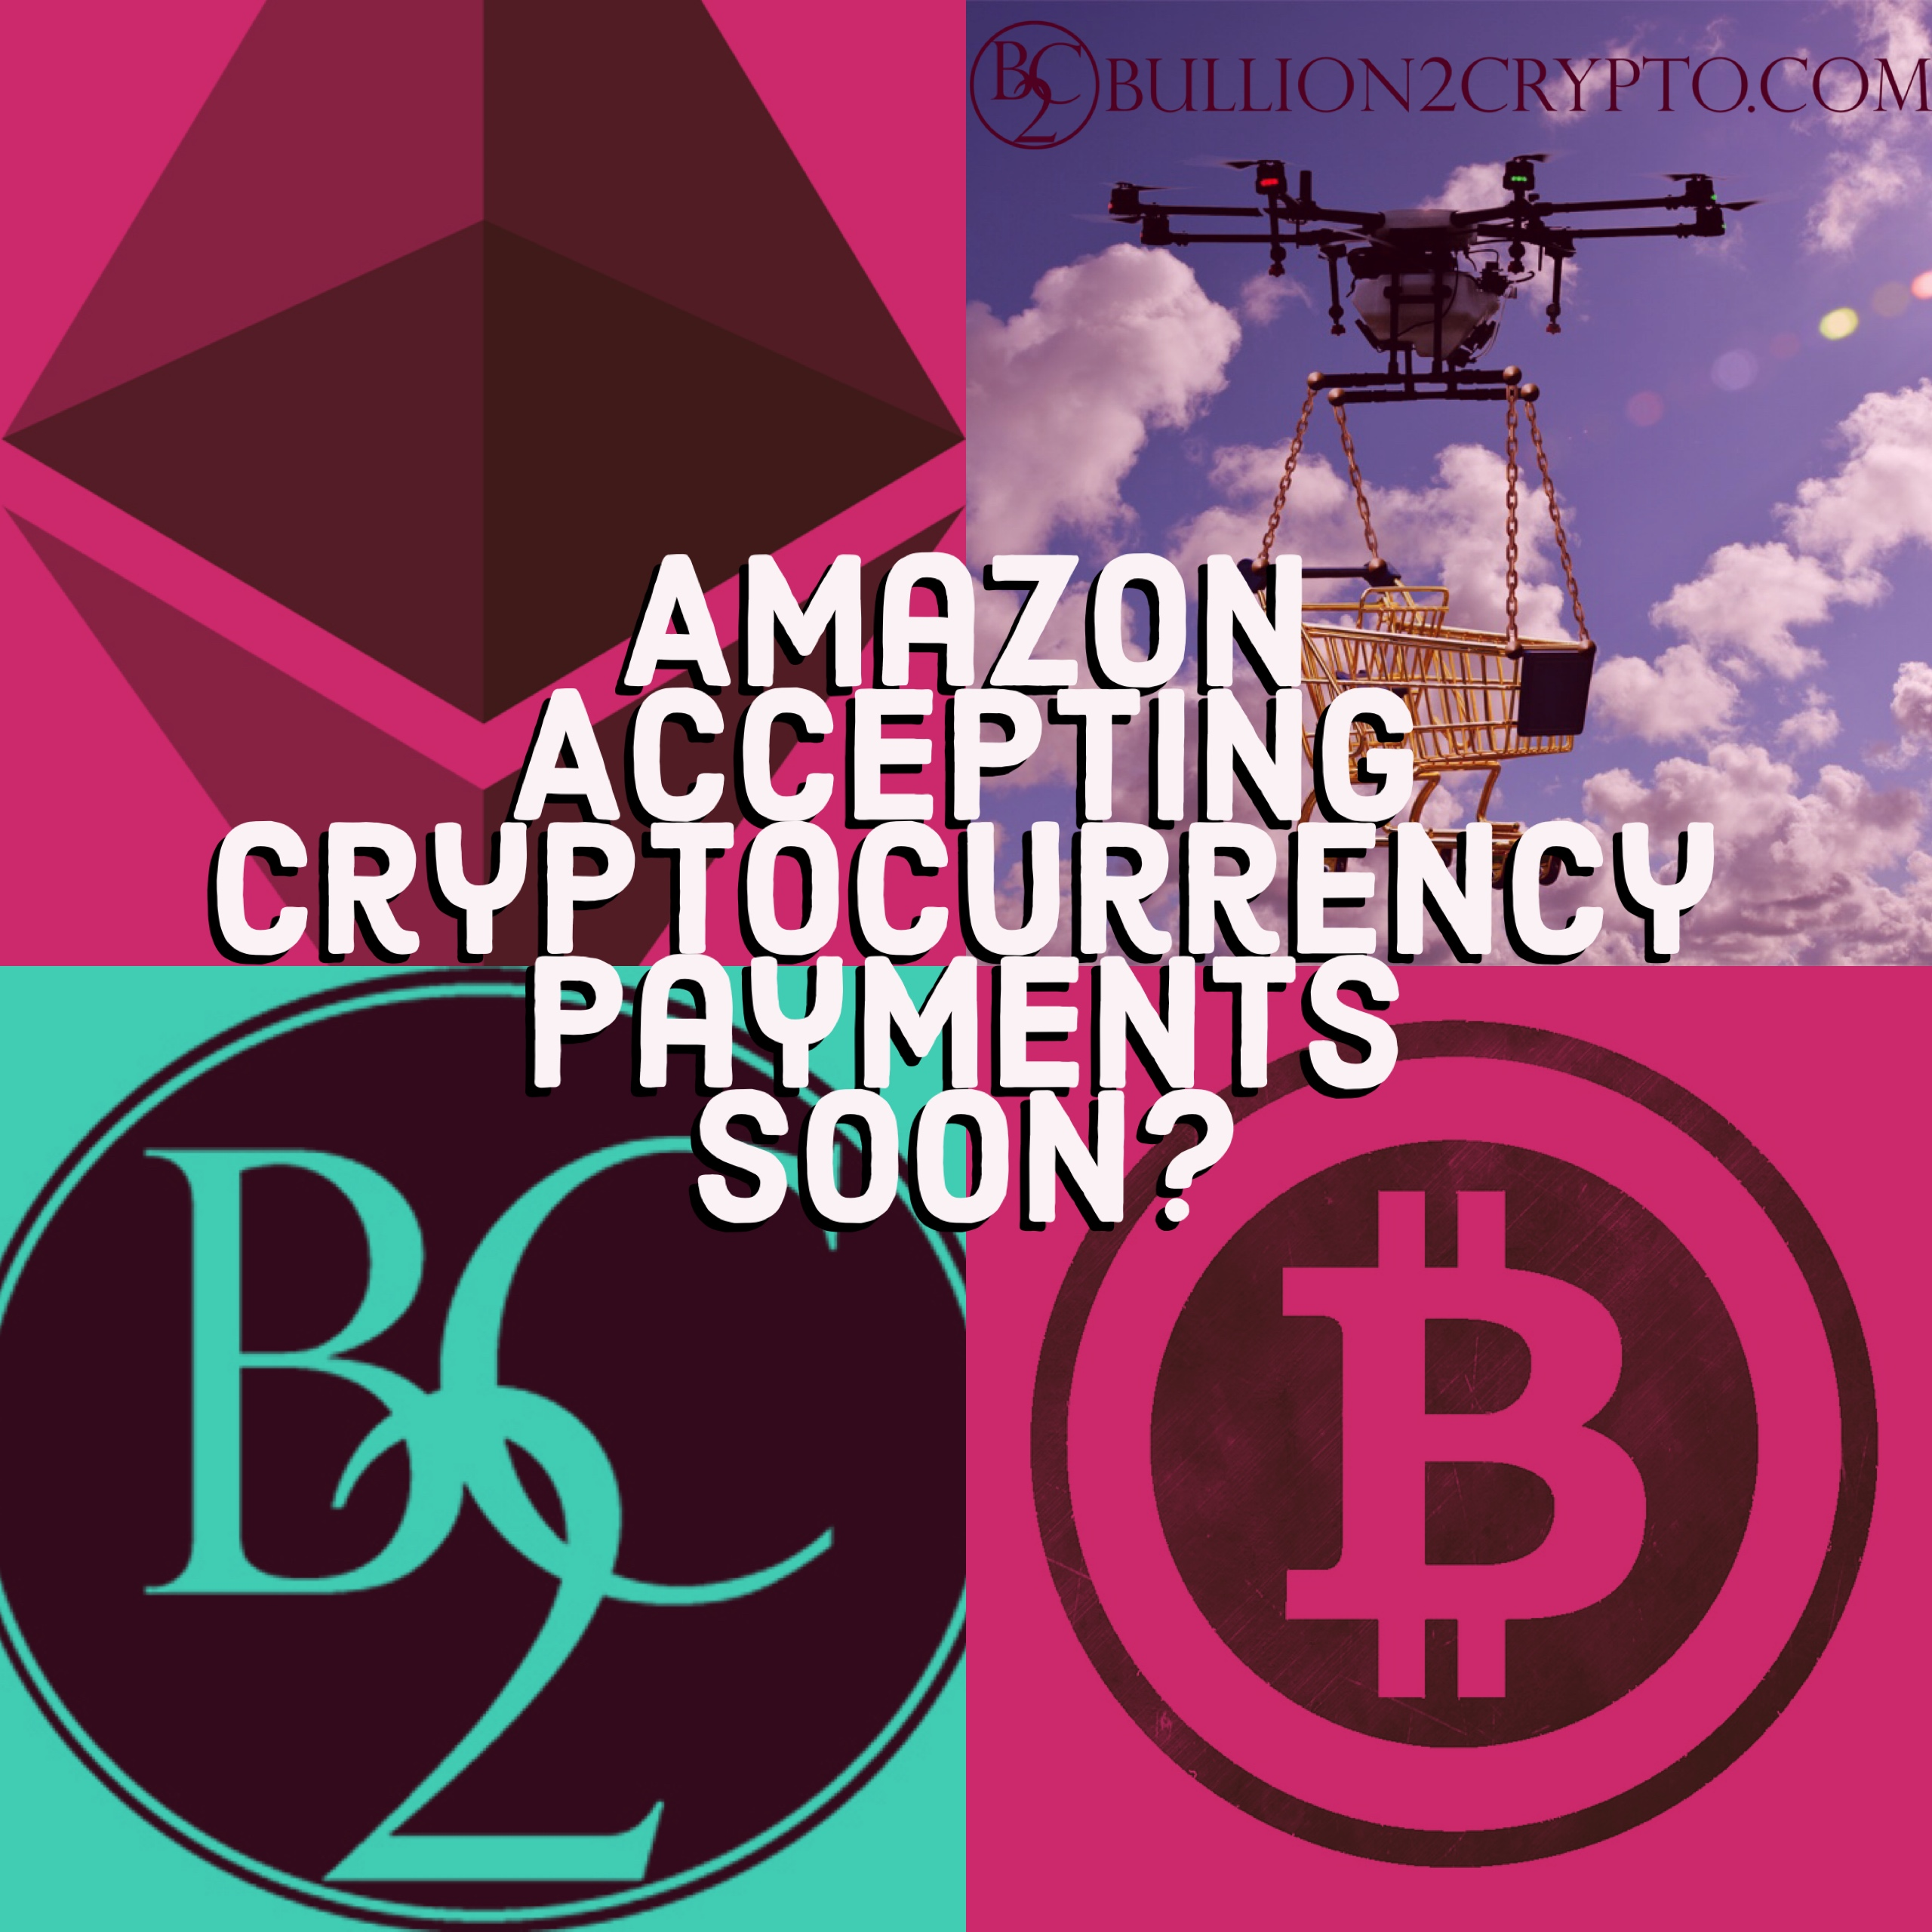 Amazon buys cryptocurrency domains. AmazonCryptocurrency.com Amazonethereum.com Amazonbitcoin.com